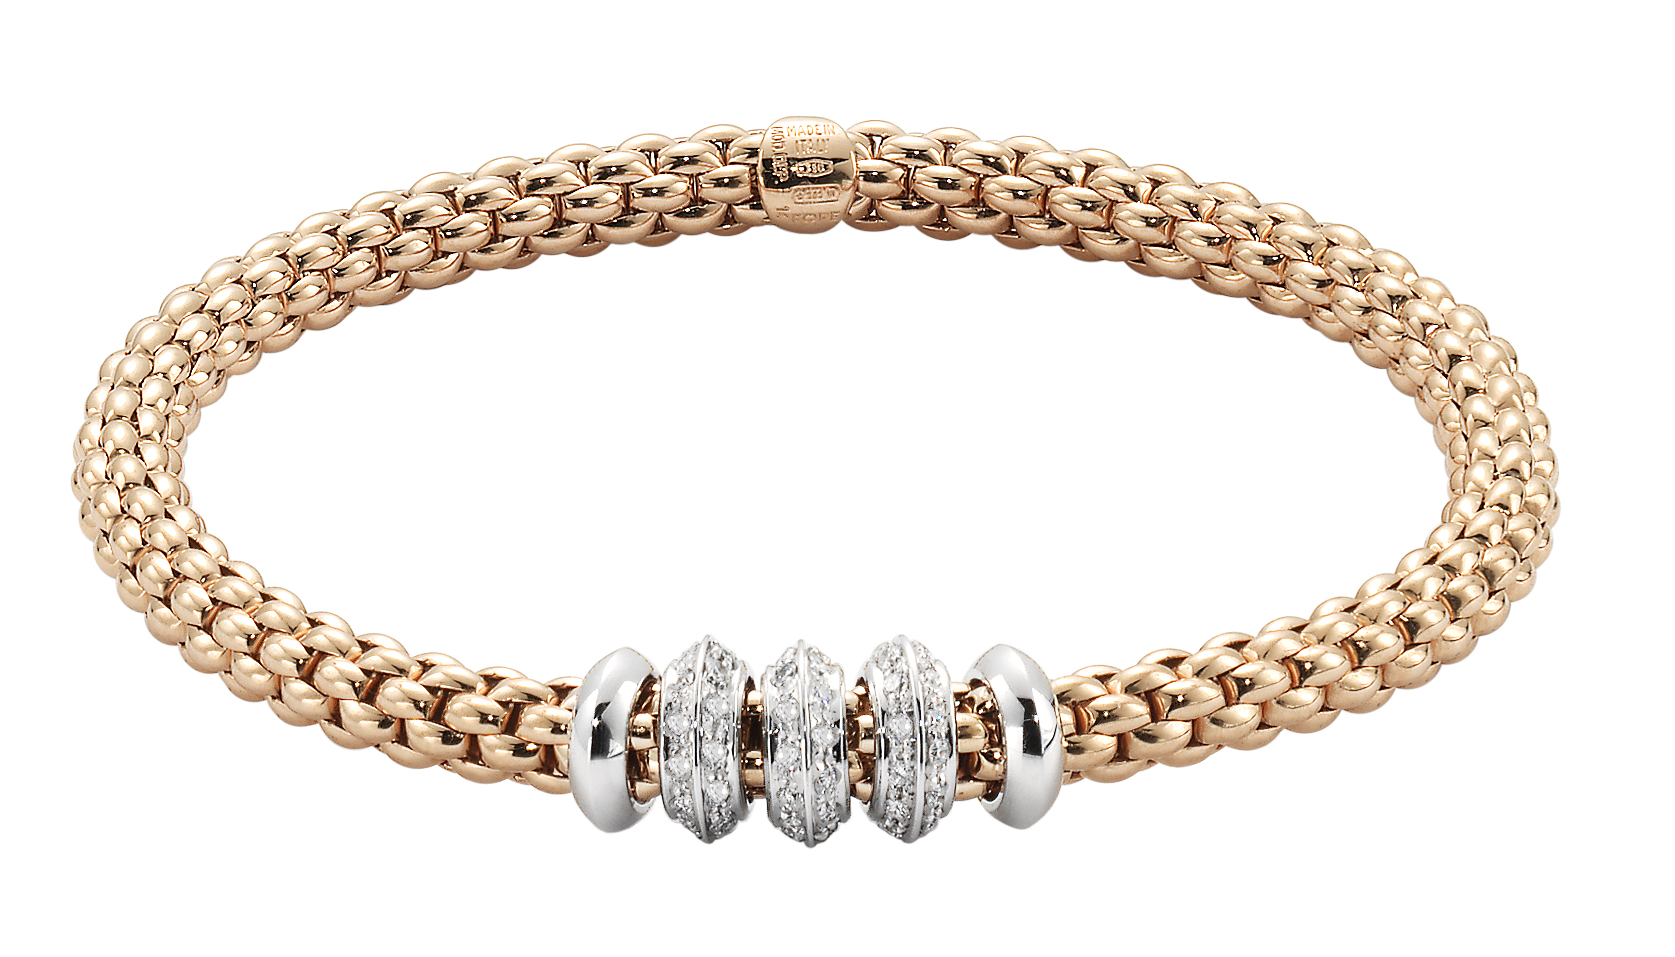 Fope Solo collection Flex'it bracelet with diamonds | JCK On Your Market